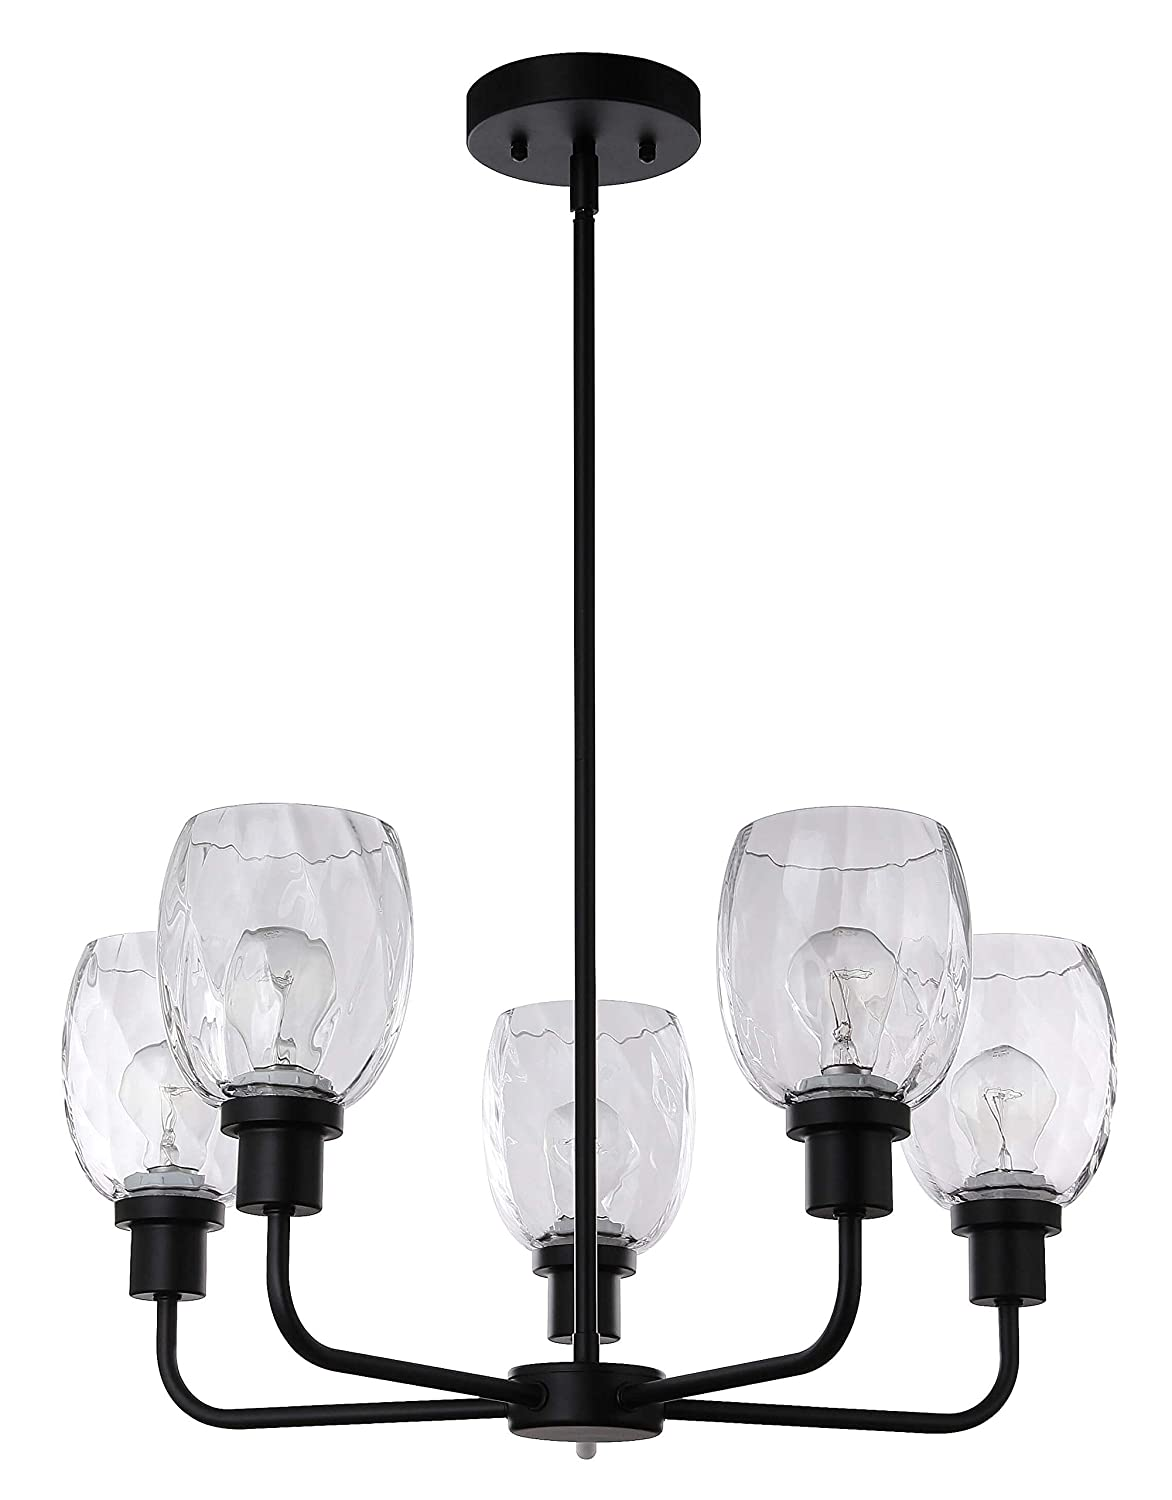 Chandelier Lights 5 Light Modern Pendant Light with Glass in Matte Black Adjustable Pendant Lighting for Dinning Living XiNBEi-Lighting XB-C1210-5-MBK